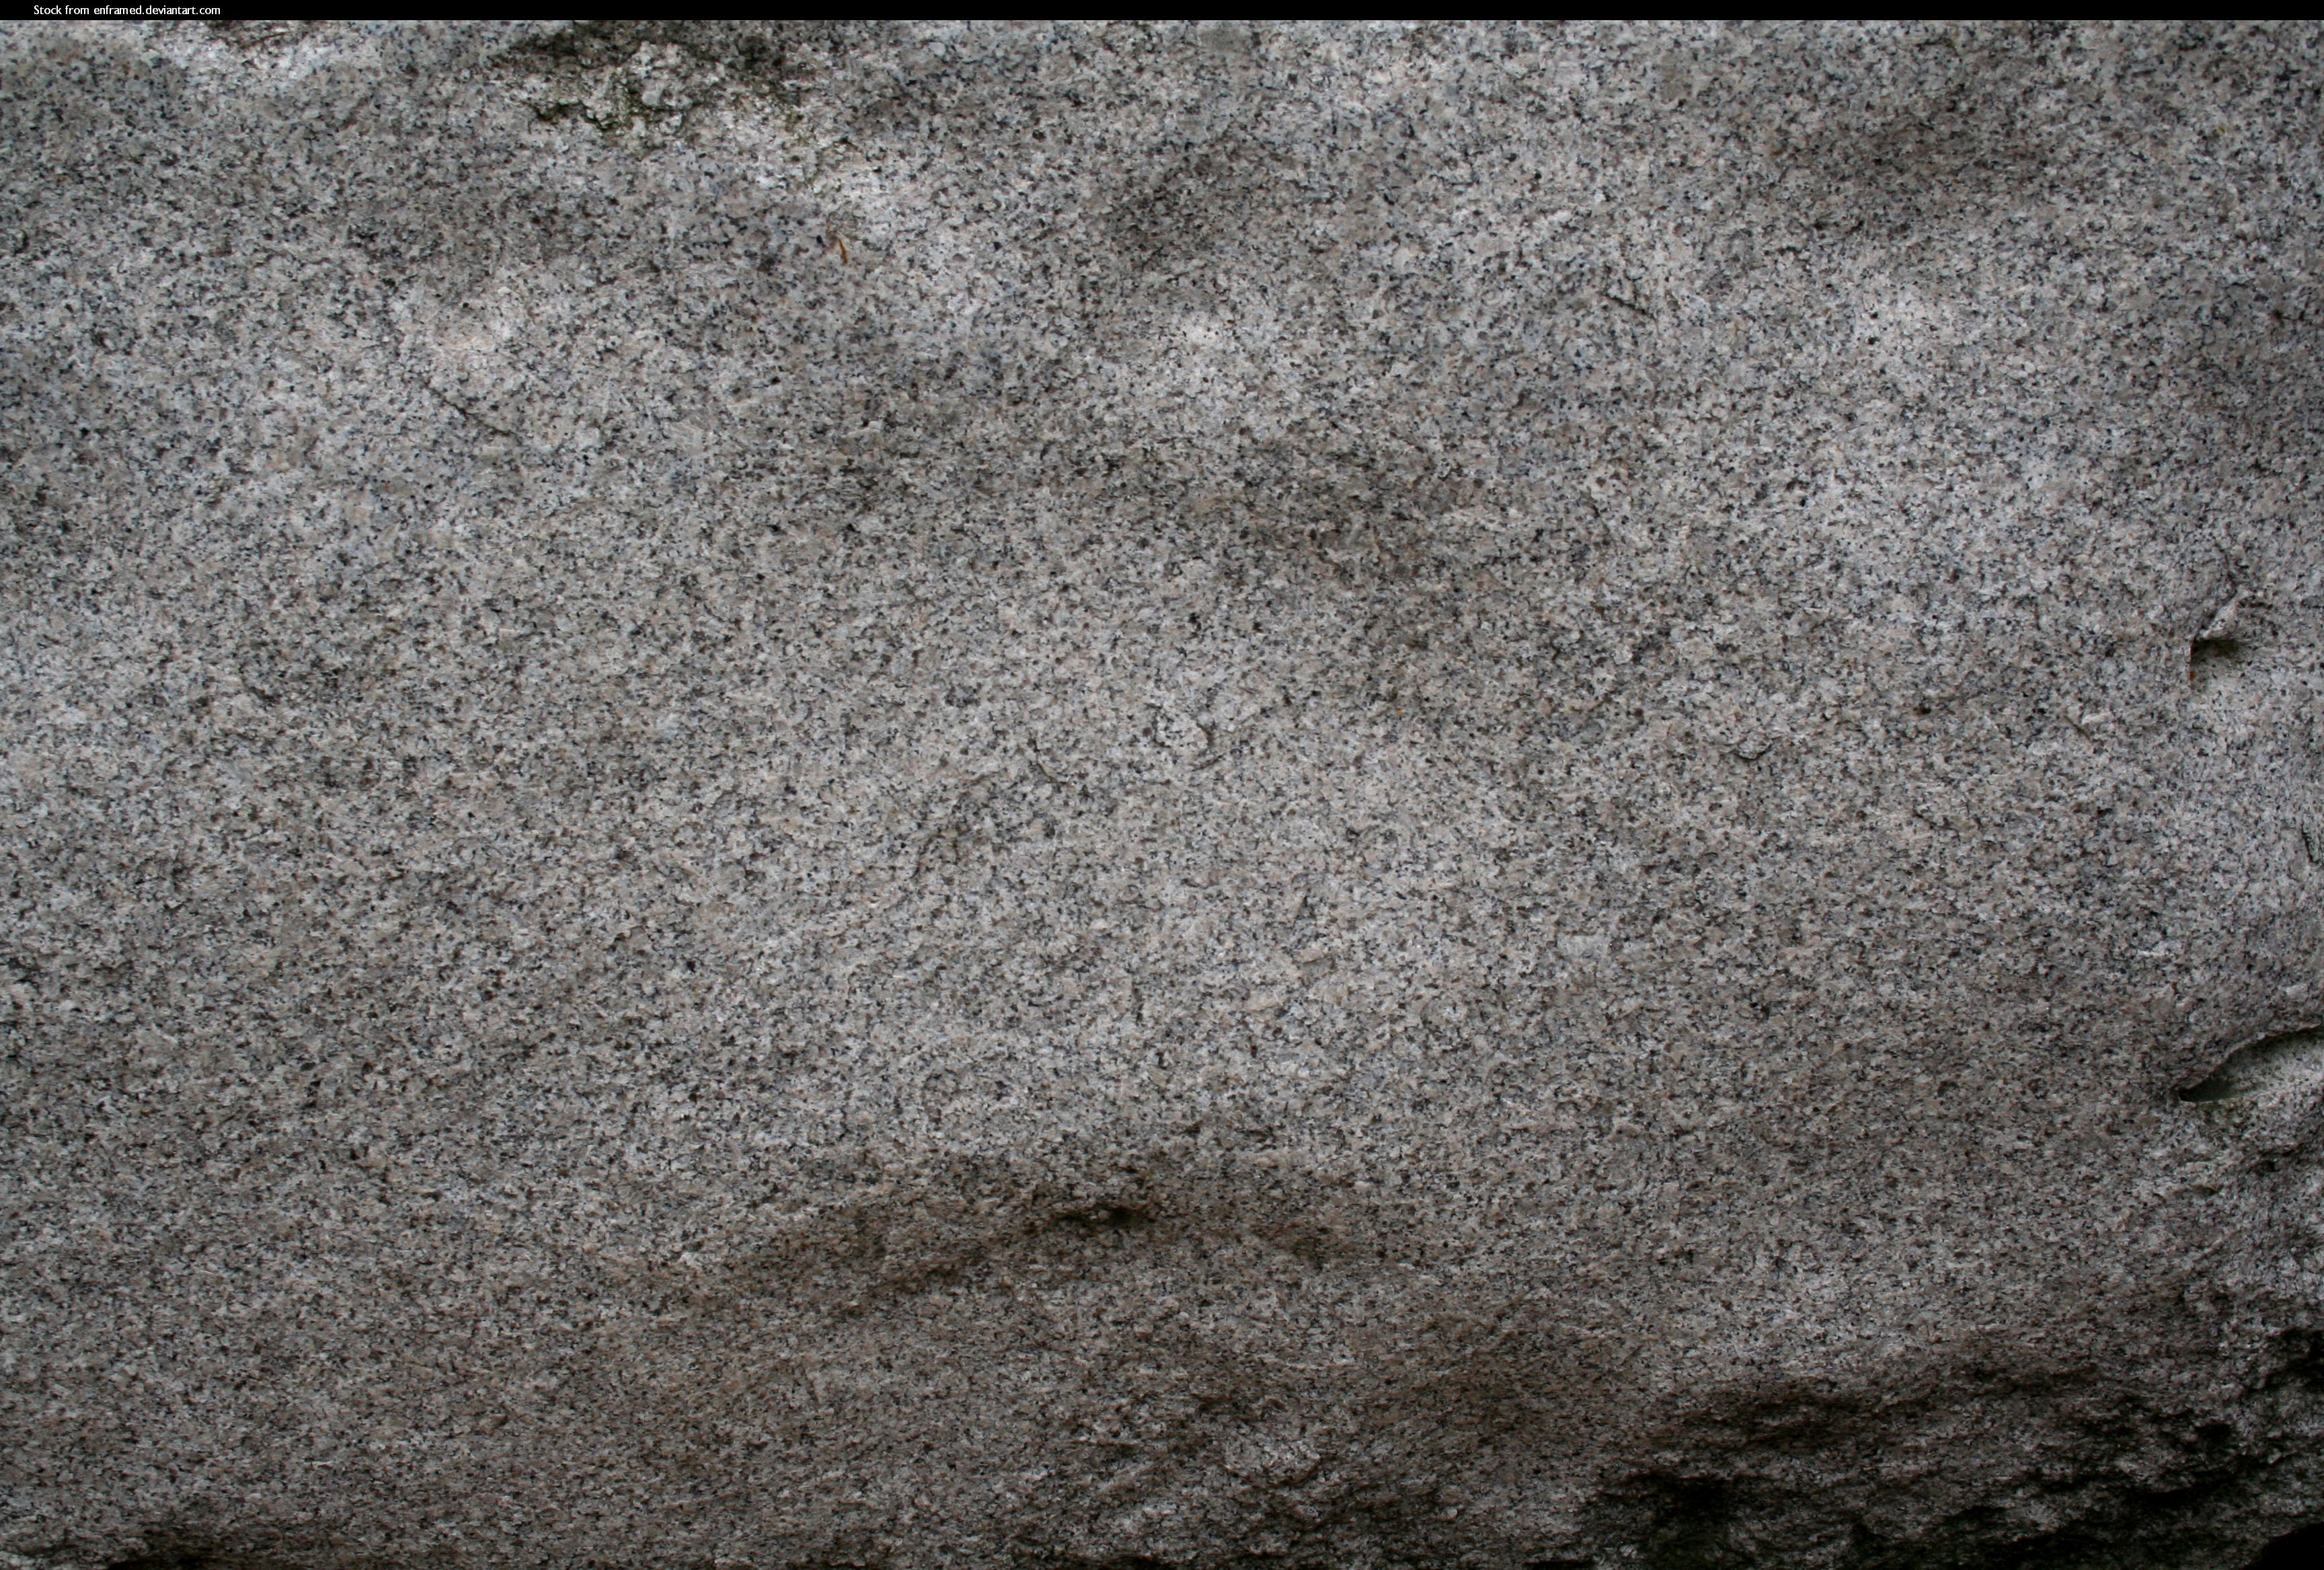 stone granite texture 2 by enframed on DeviantArt